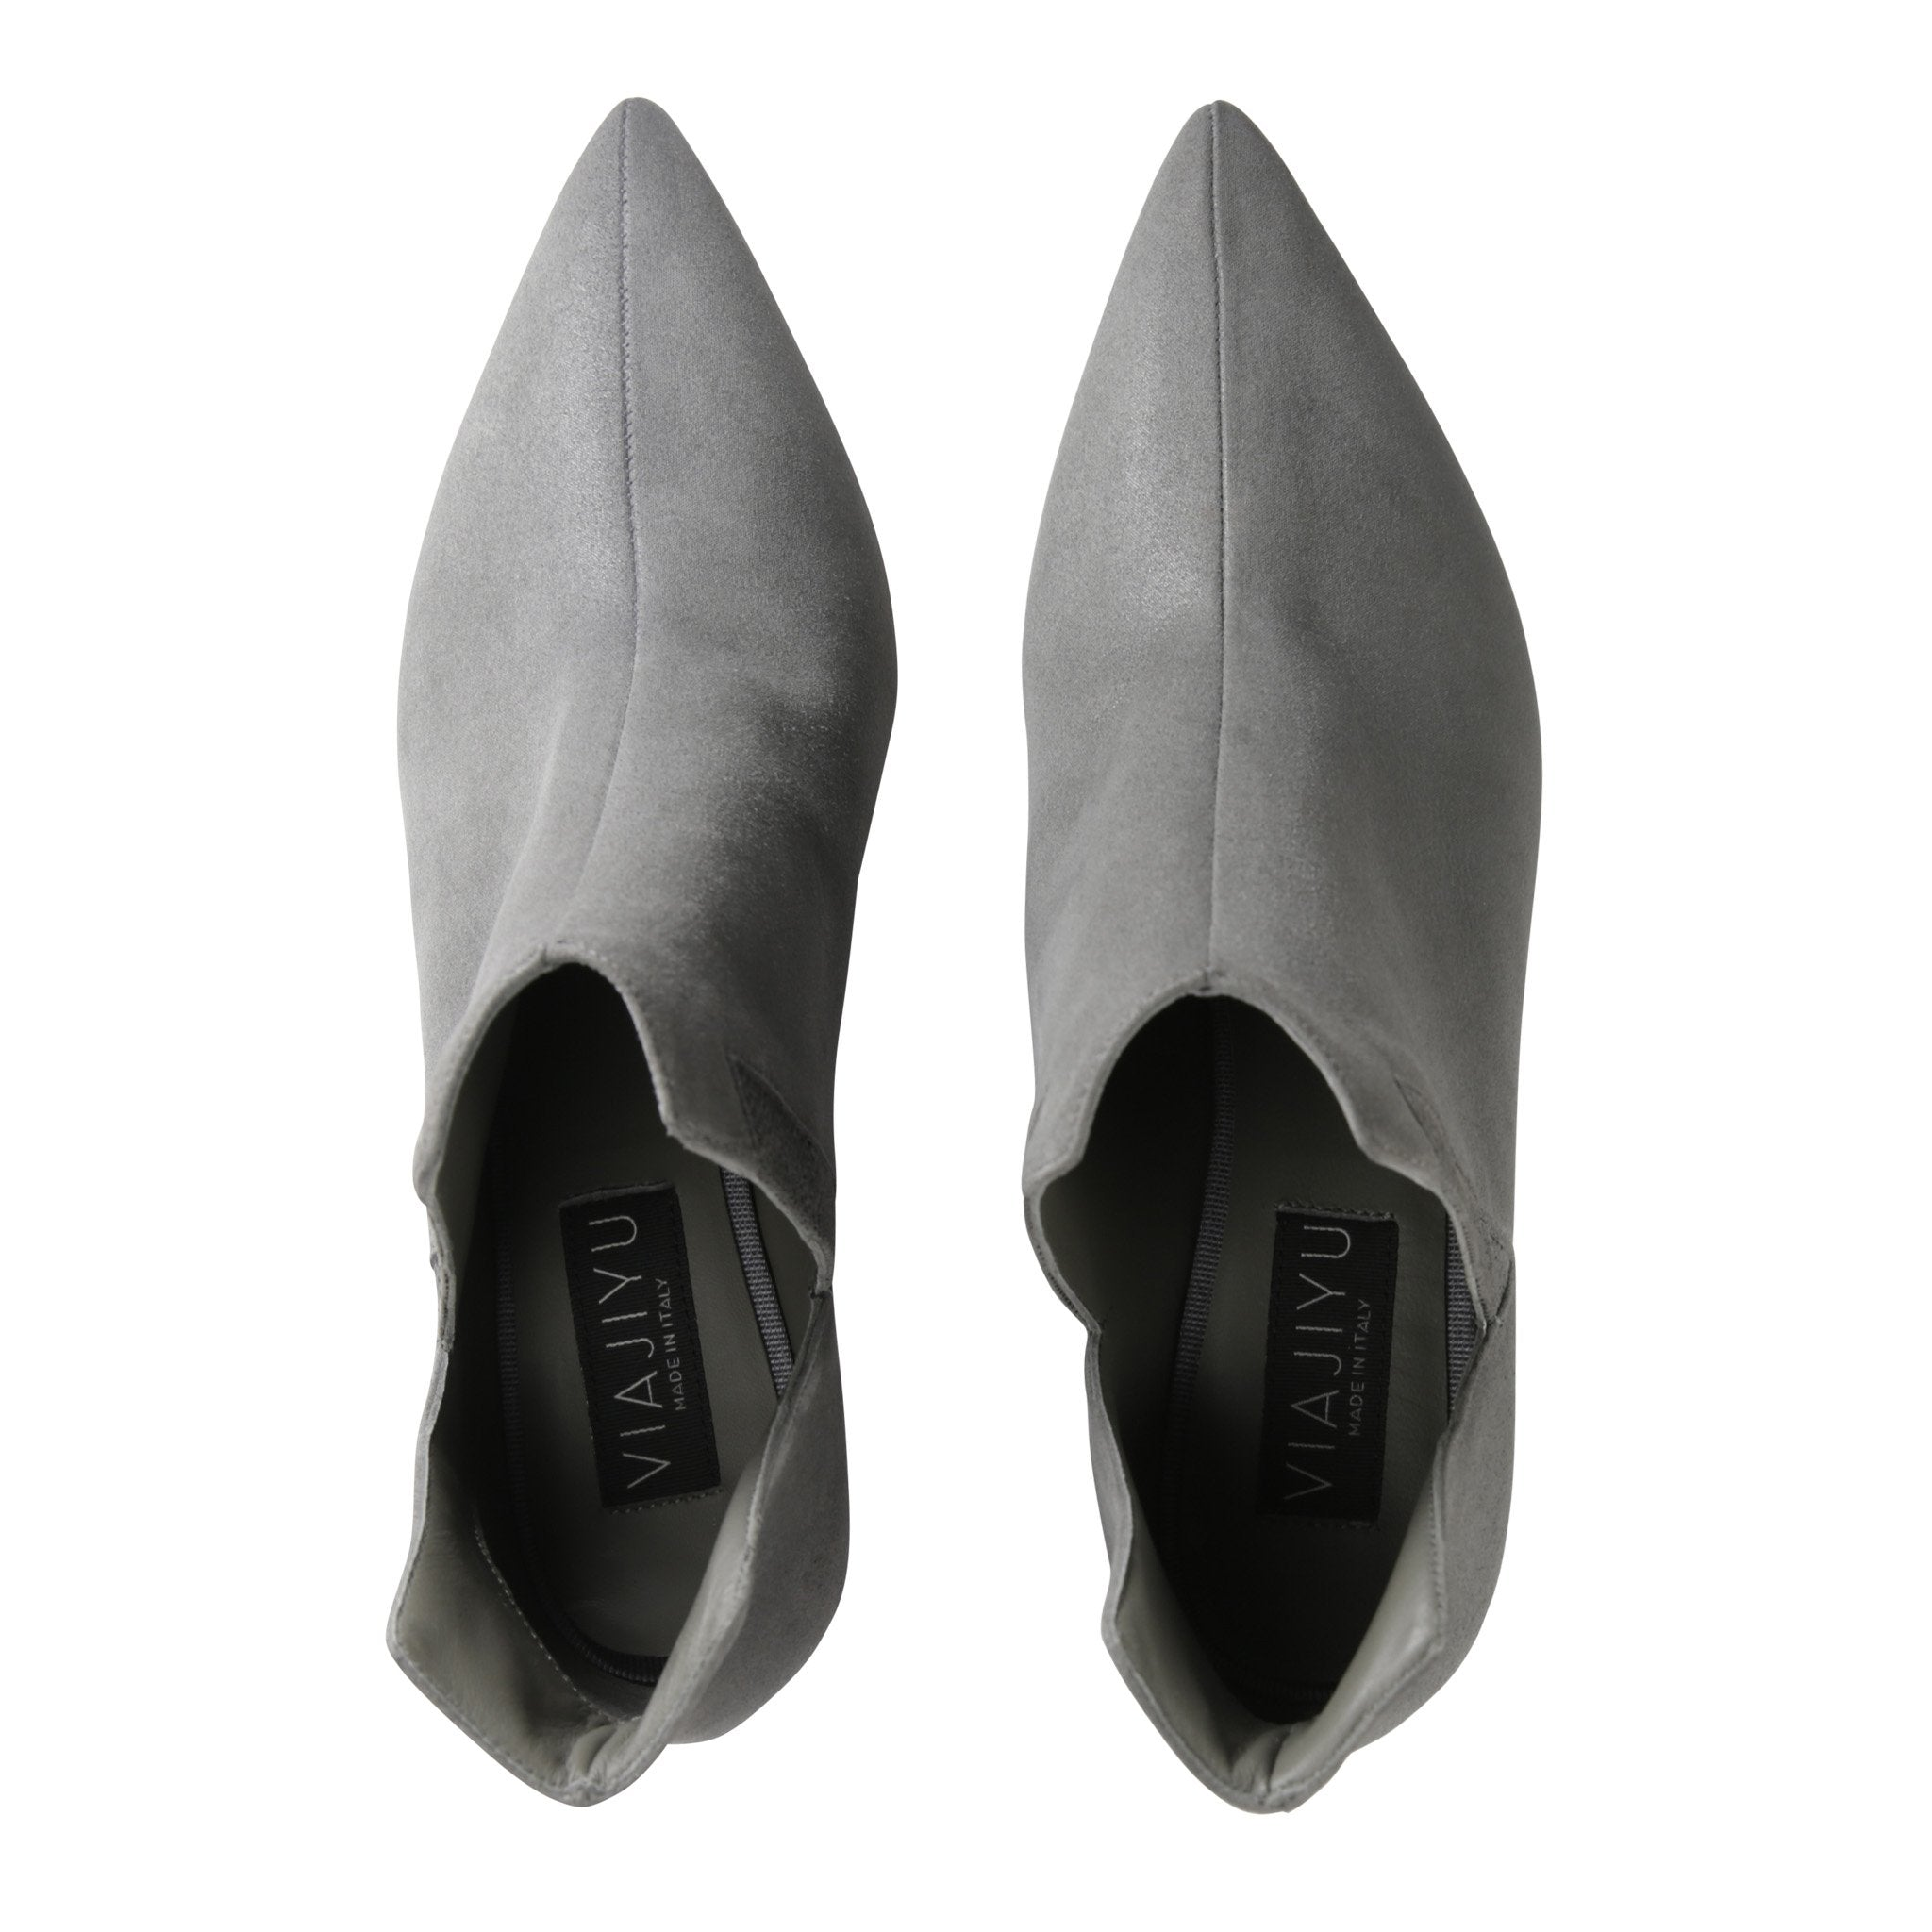 SYRENE - Hydra + Karung Anthracite, VIAJIYU - Women's Hand Made Sustainable Luxury Shoes. Made in Italy. Made to Order.